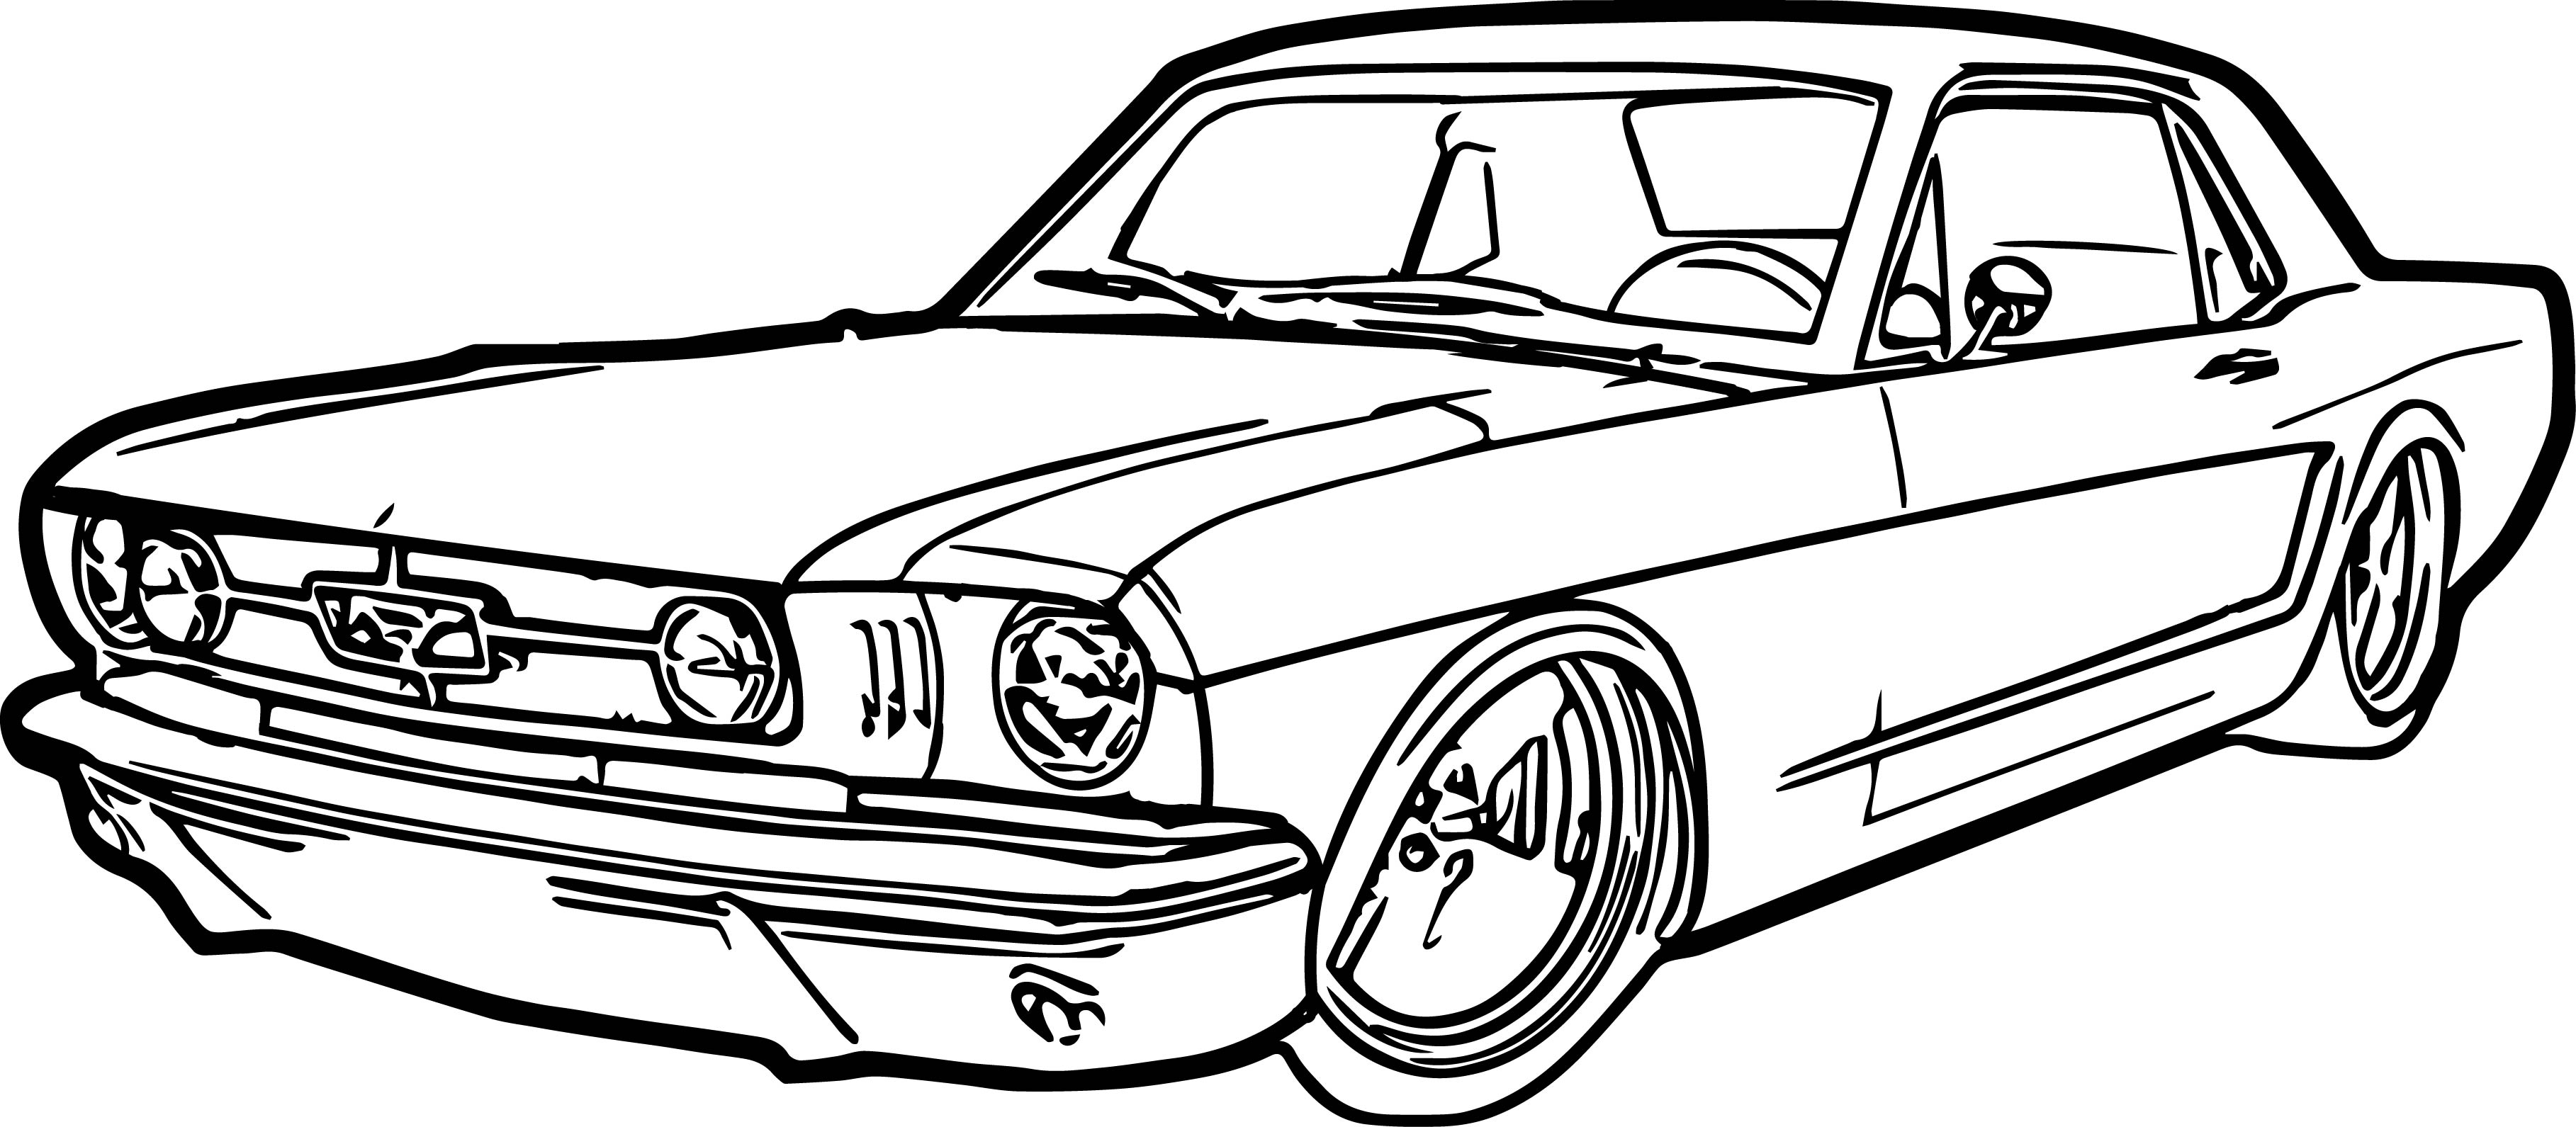 Coloring Pages To Print Of Cars : Ford mustang car coloring page wecoloringpage